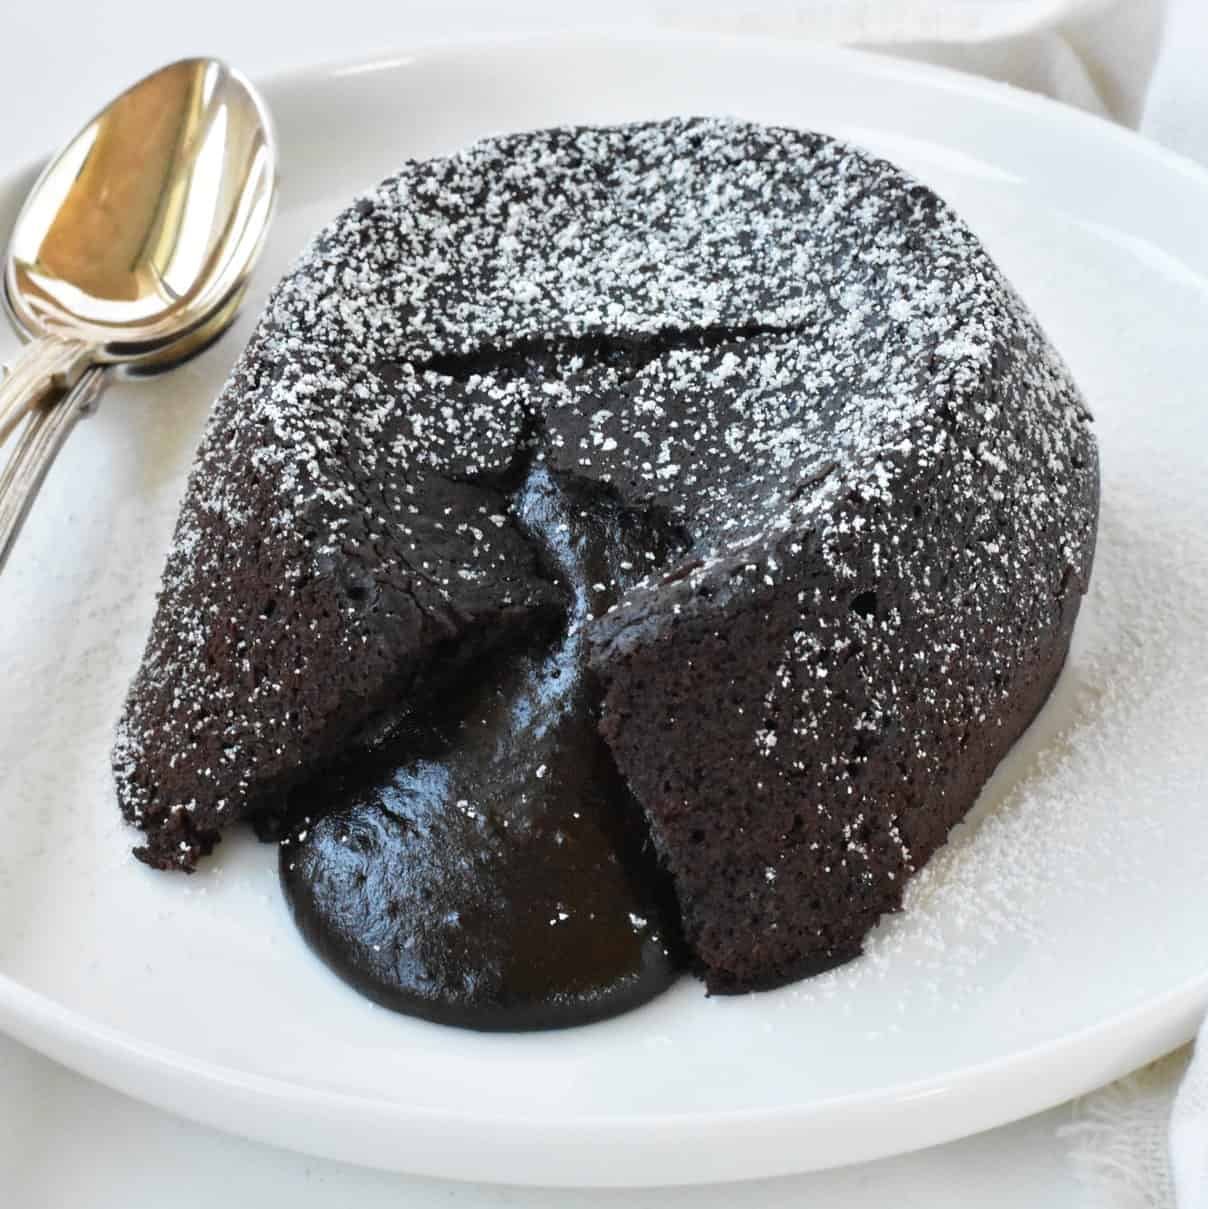 Molten lava cake on plate.